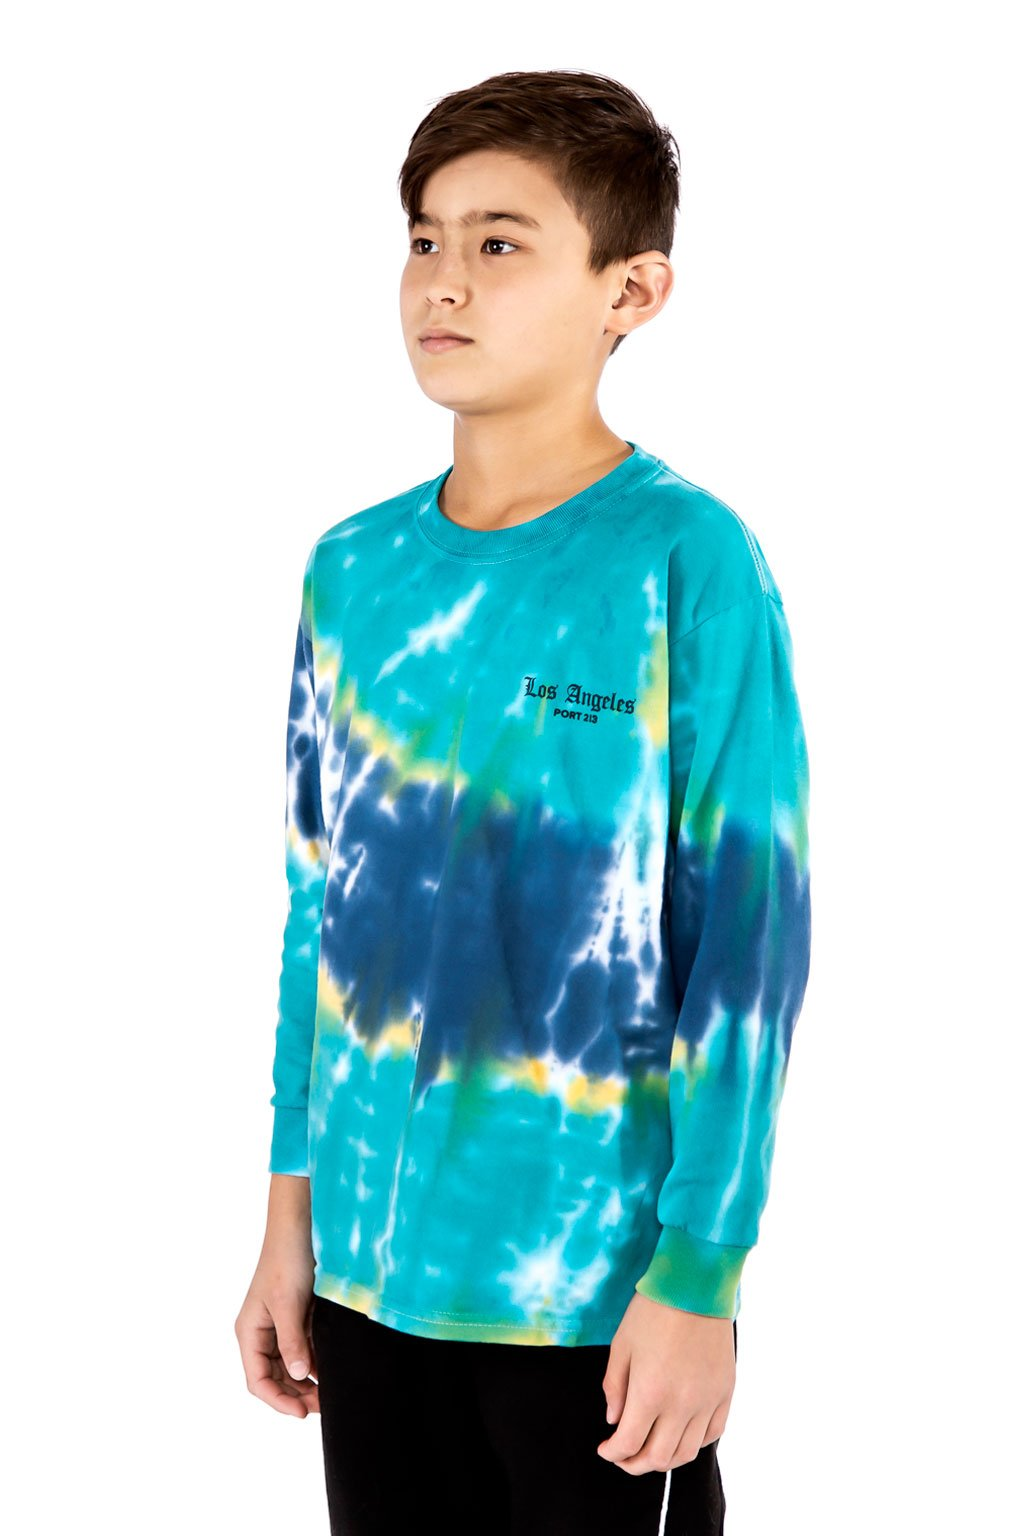 Blue Tie dye Los Angeles Long Sleeve T-shirt - Port 213.com